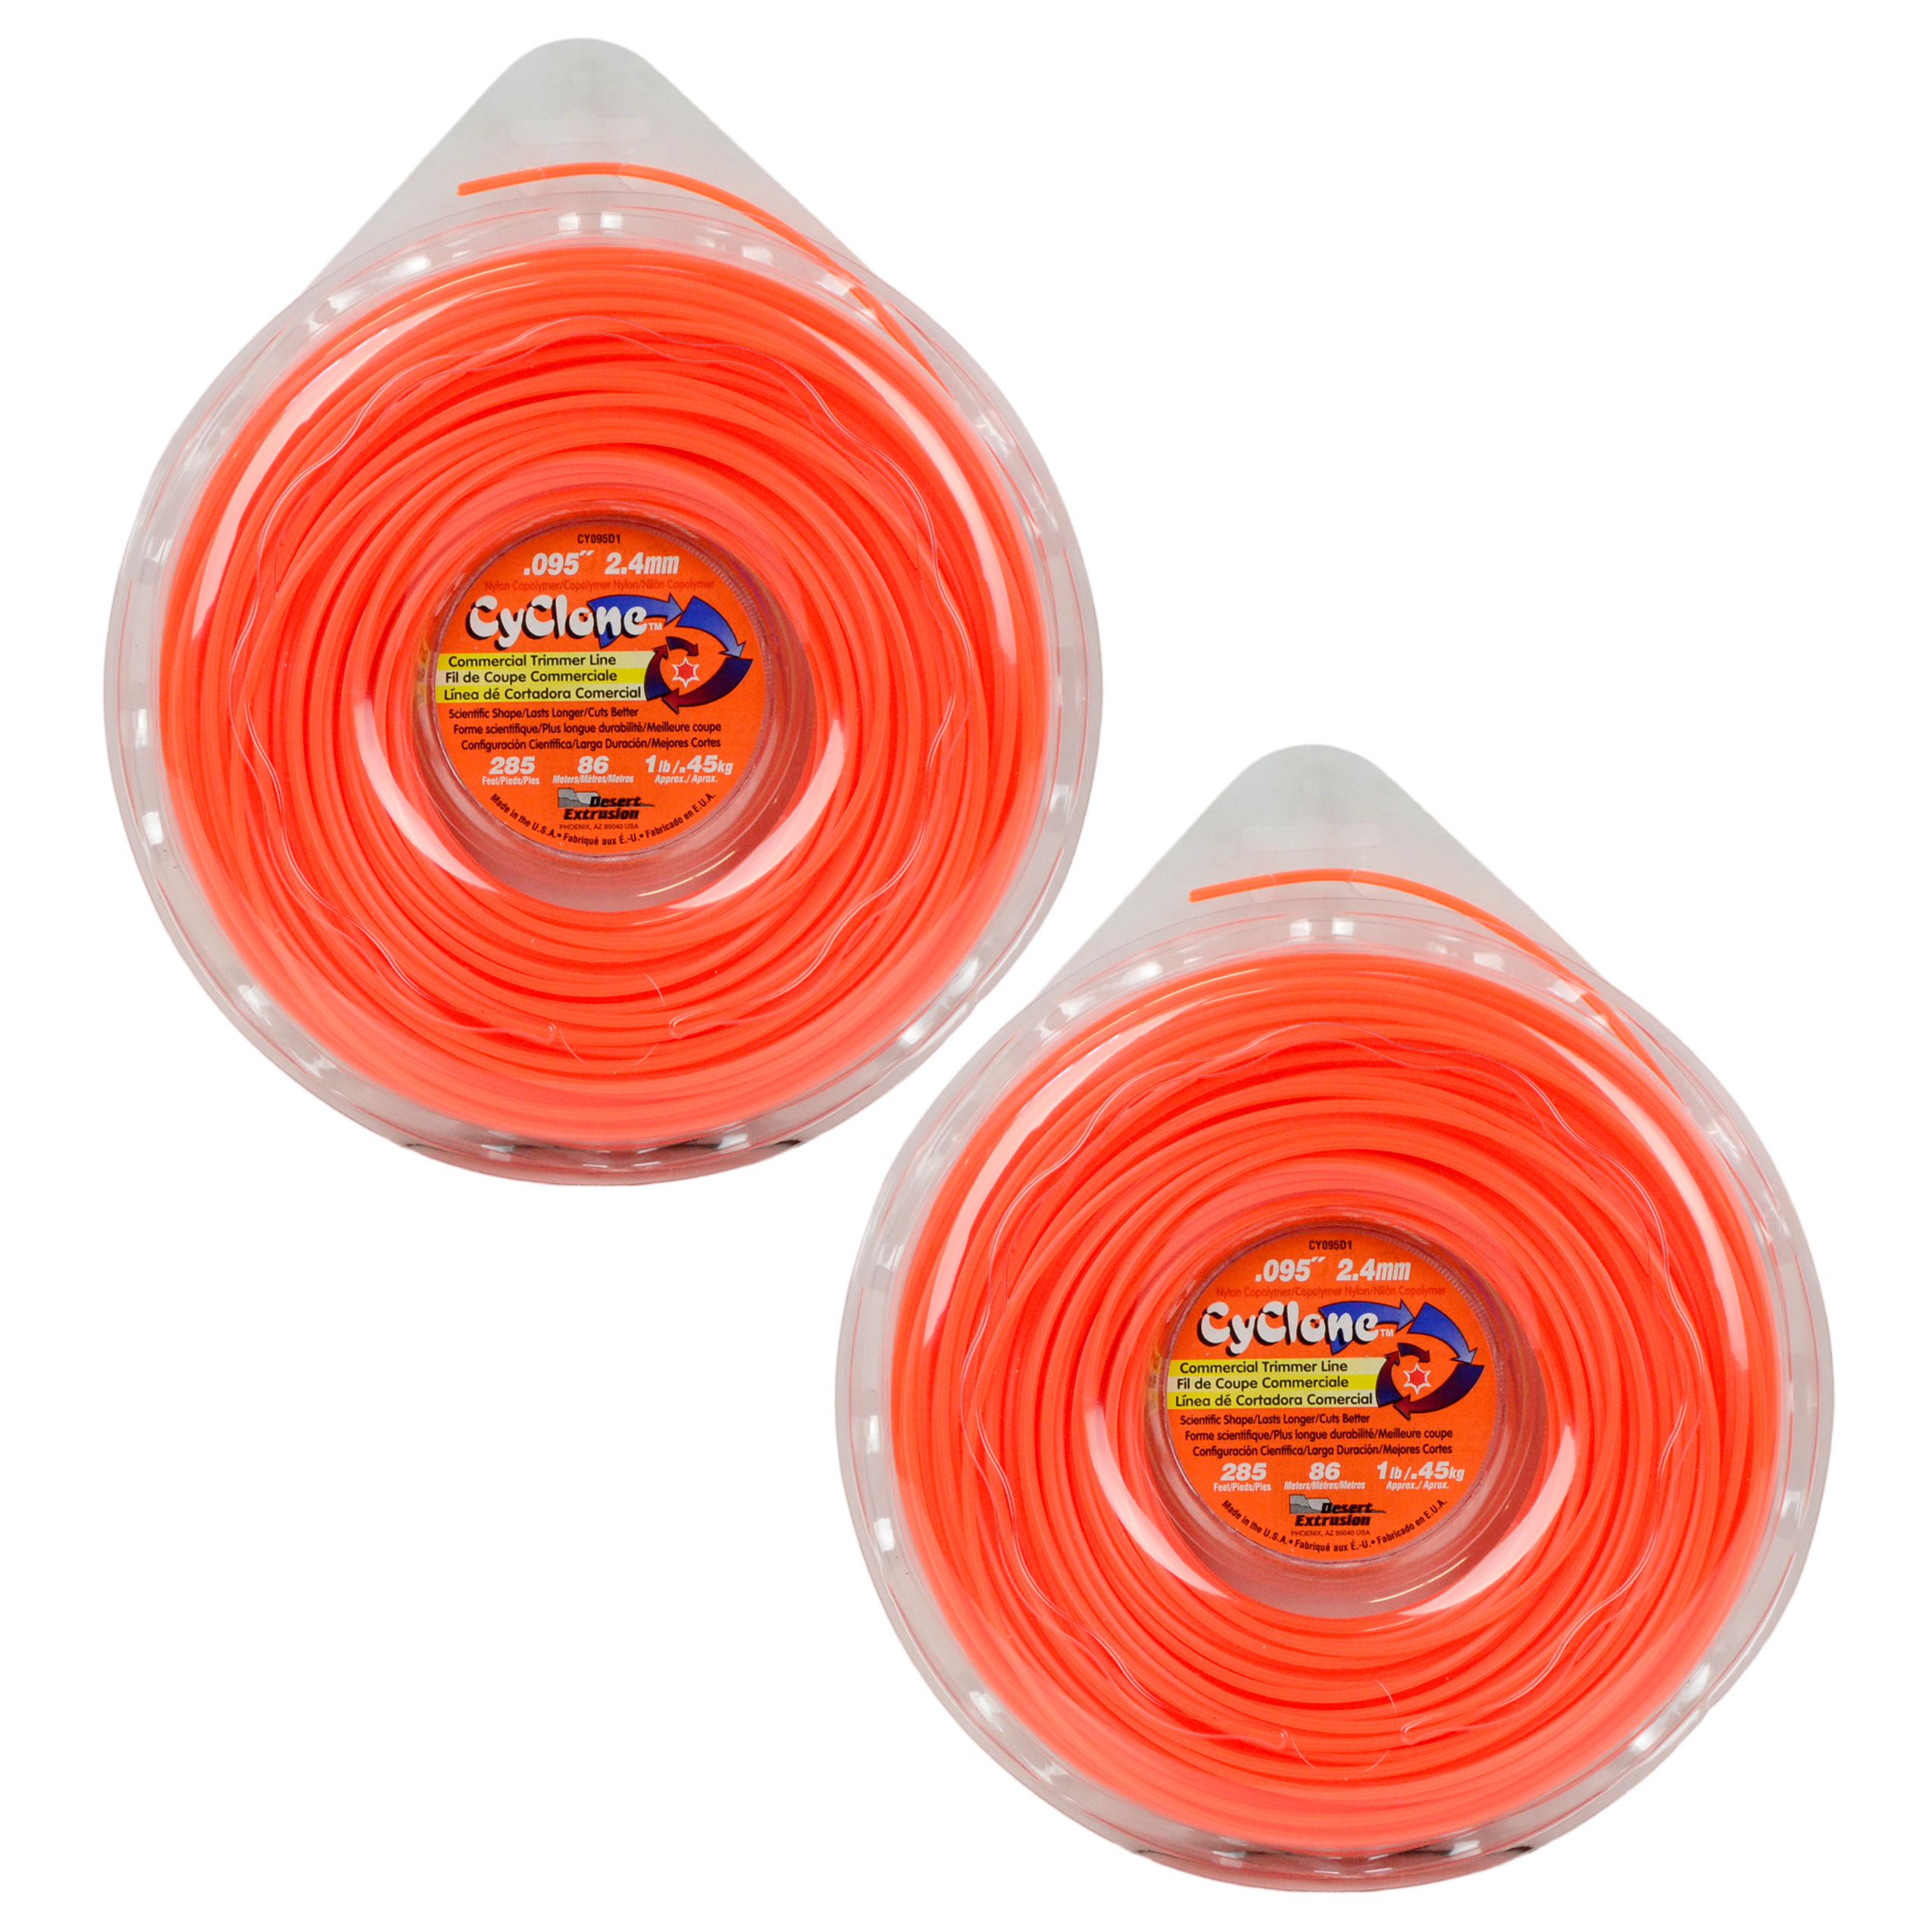 "Cyclone CY095D1 0.095"" x 285' Commercial String Trimmer Line Orange (2-Pack), Made in the USA"